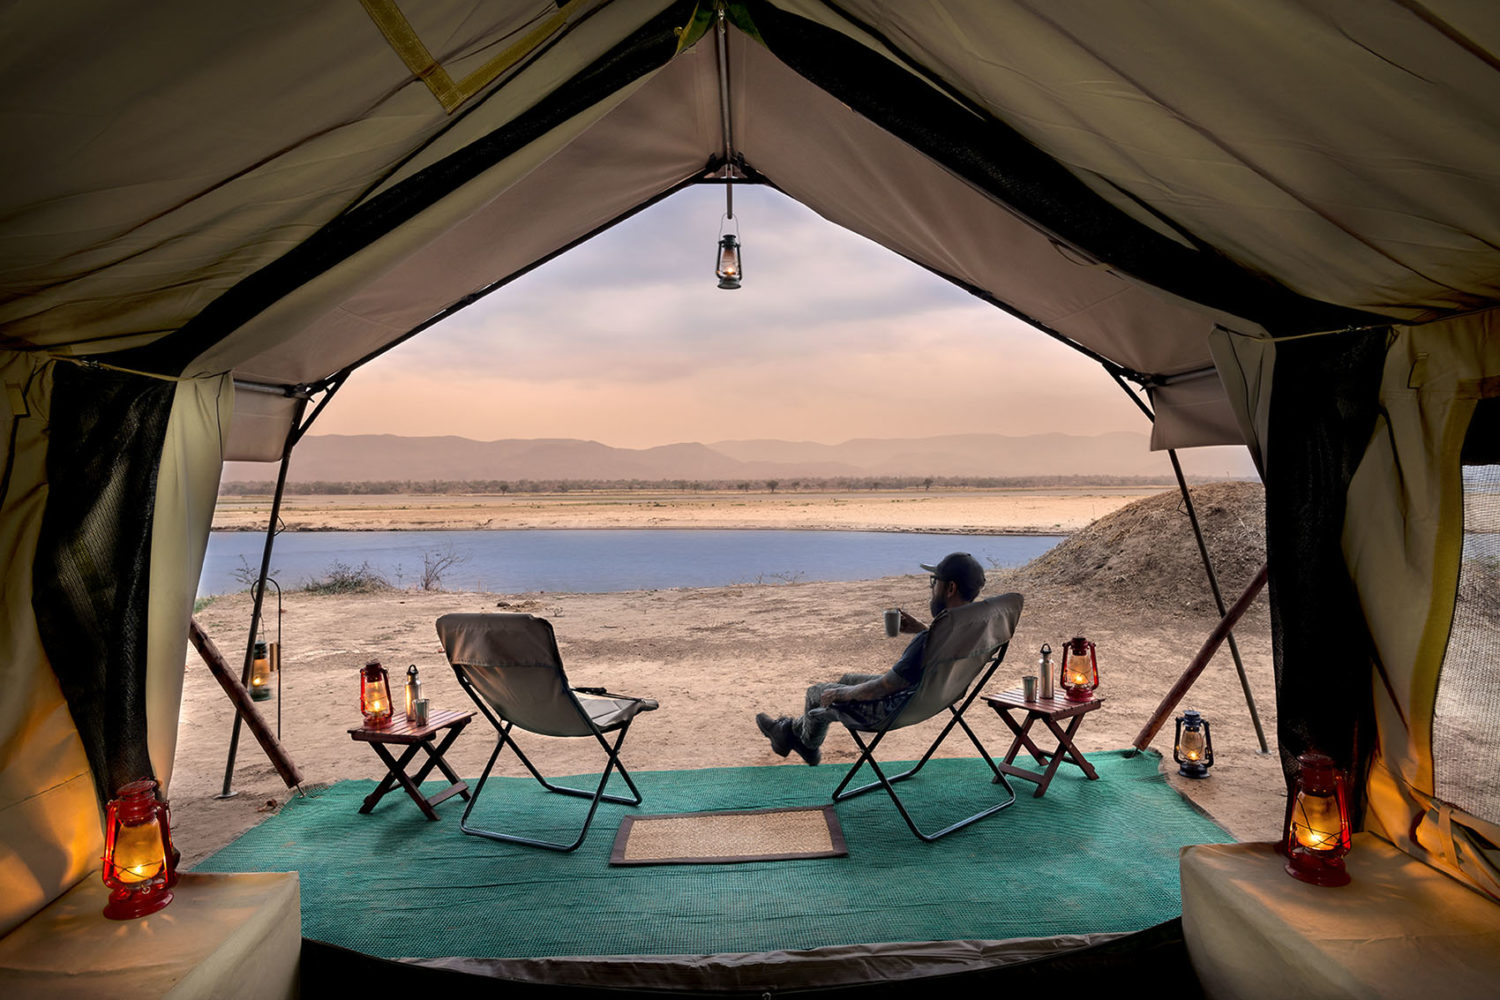 zambezi expeditions mana-pools-national-park-lodges-zimbabwe-african-bush-camps-tent-views-drinks